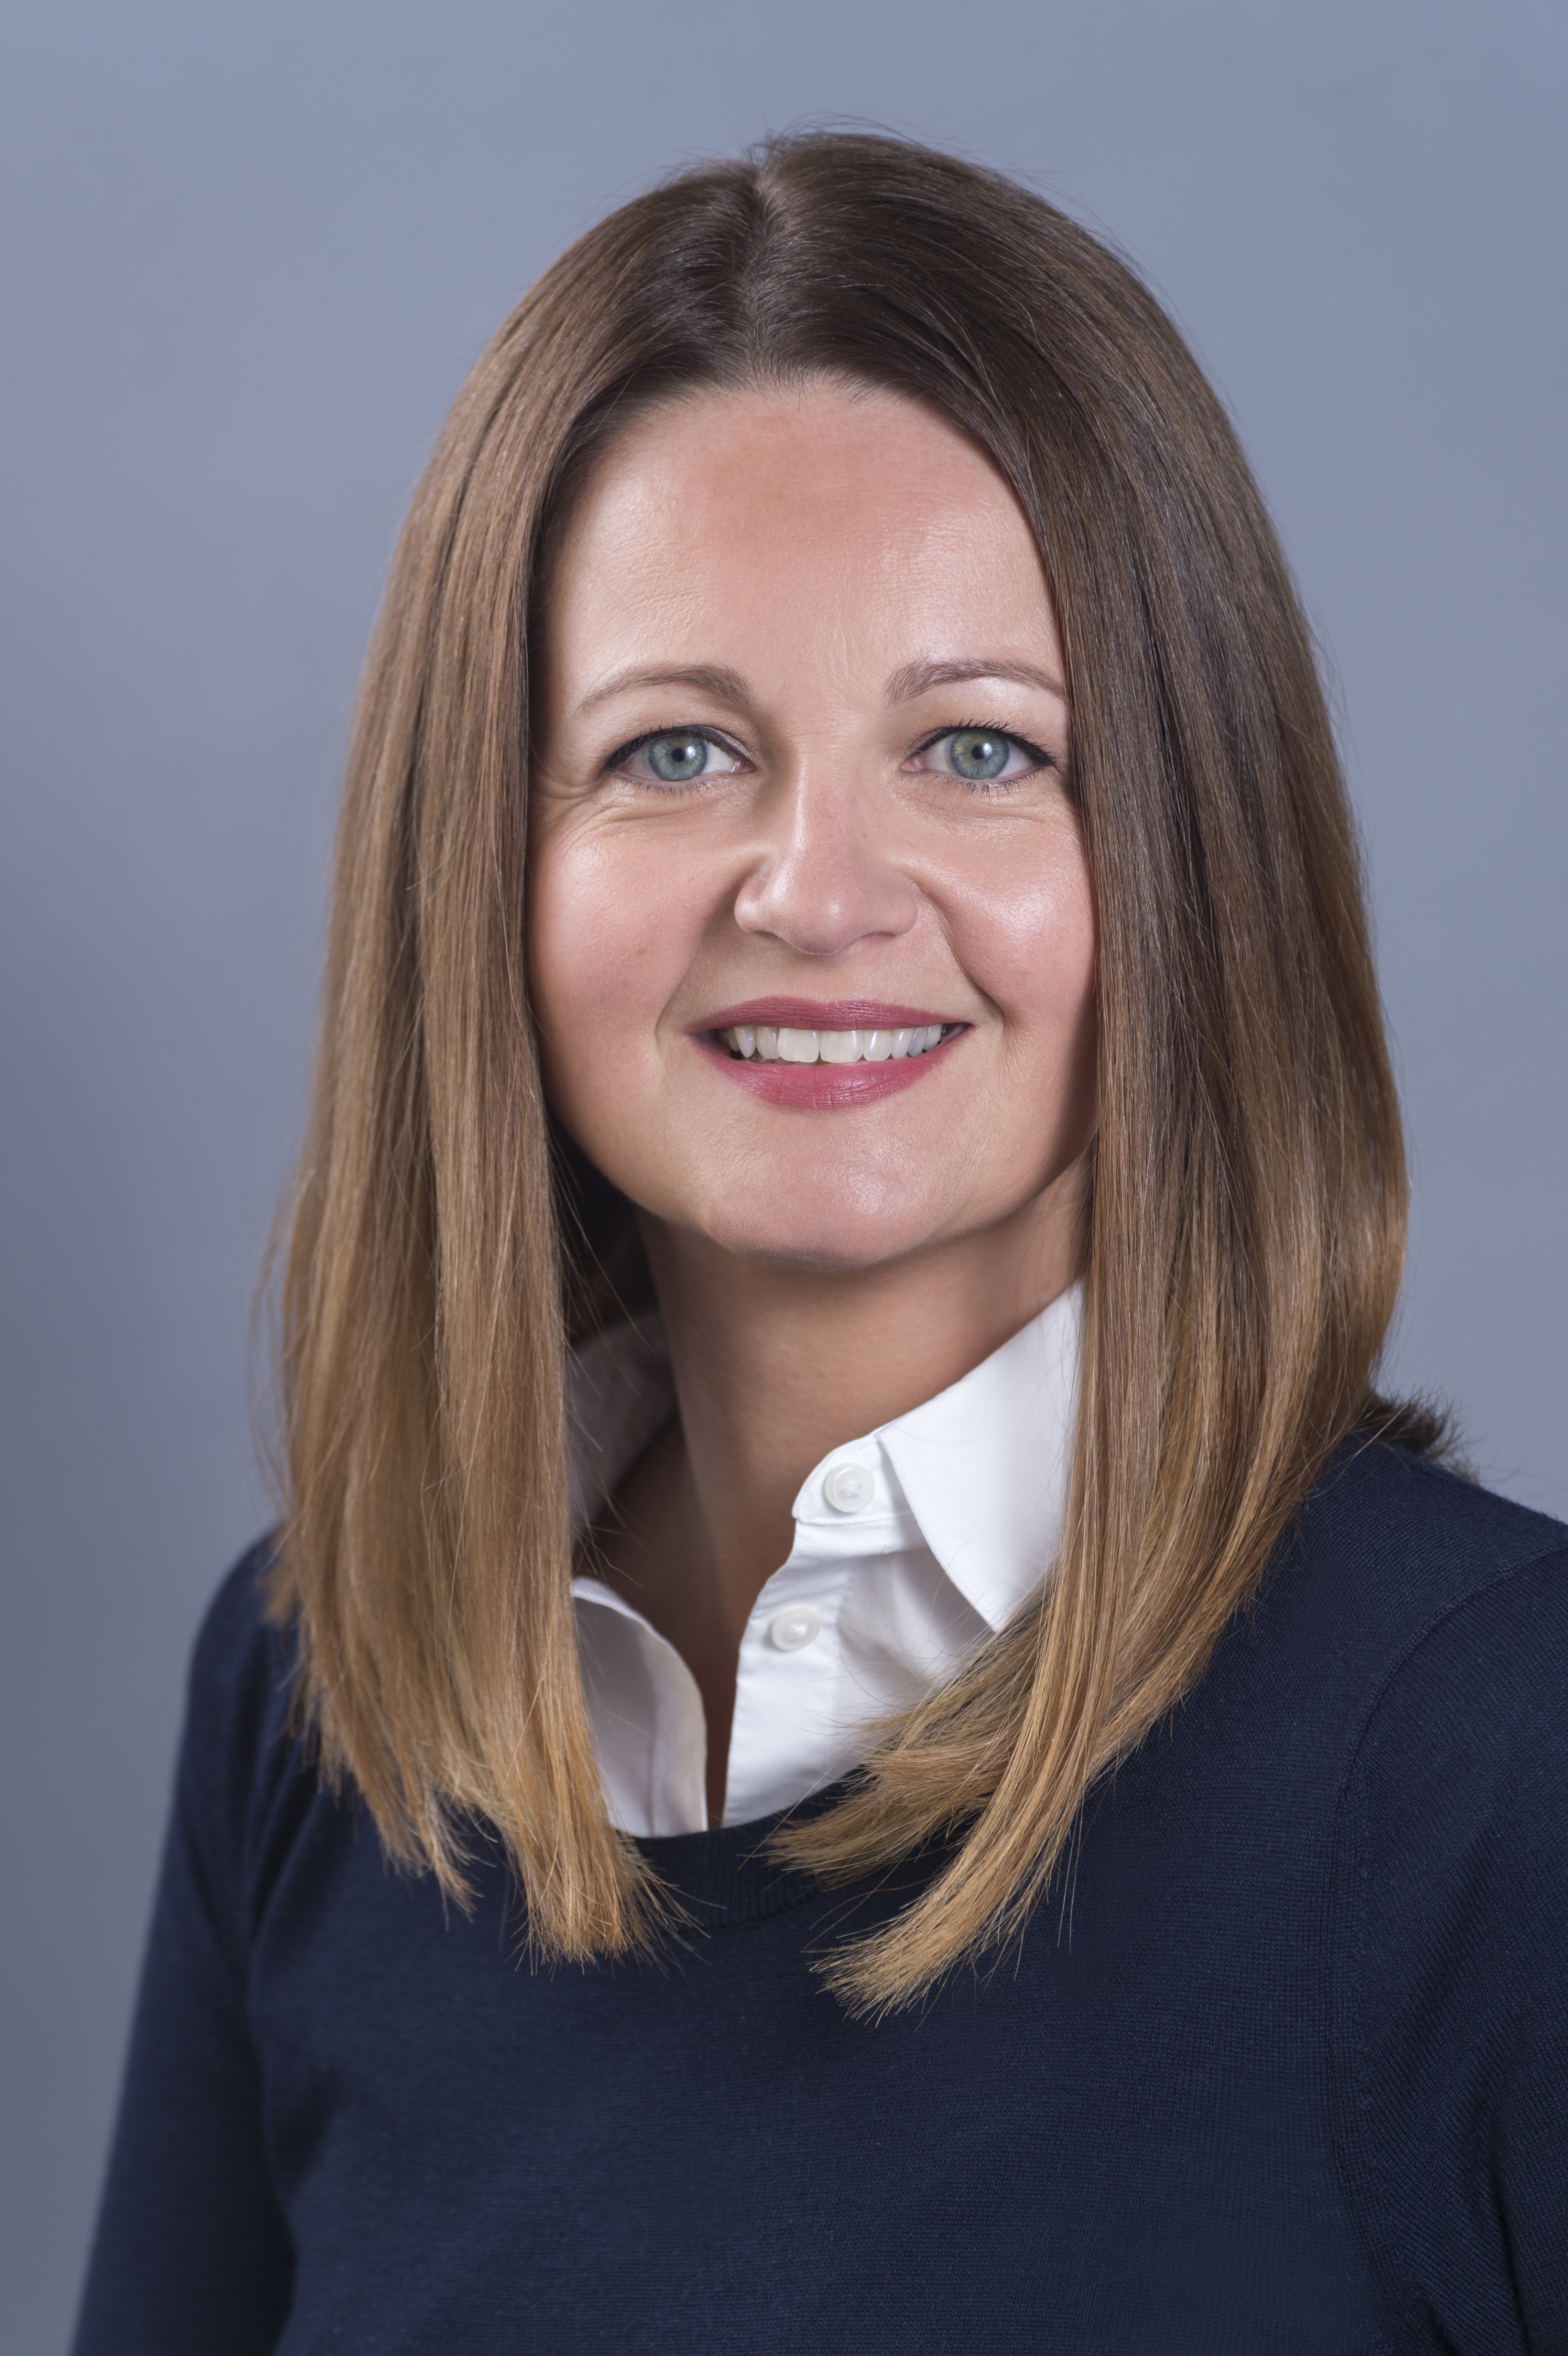 Krisztina Ford, Chief Executive Officer, President